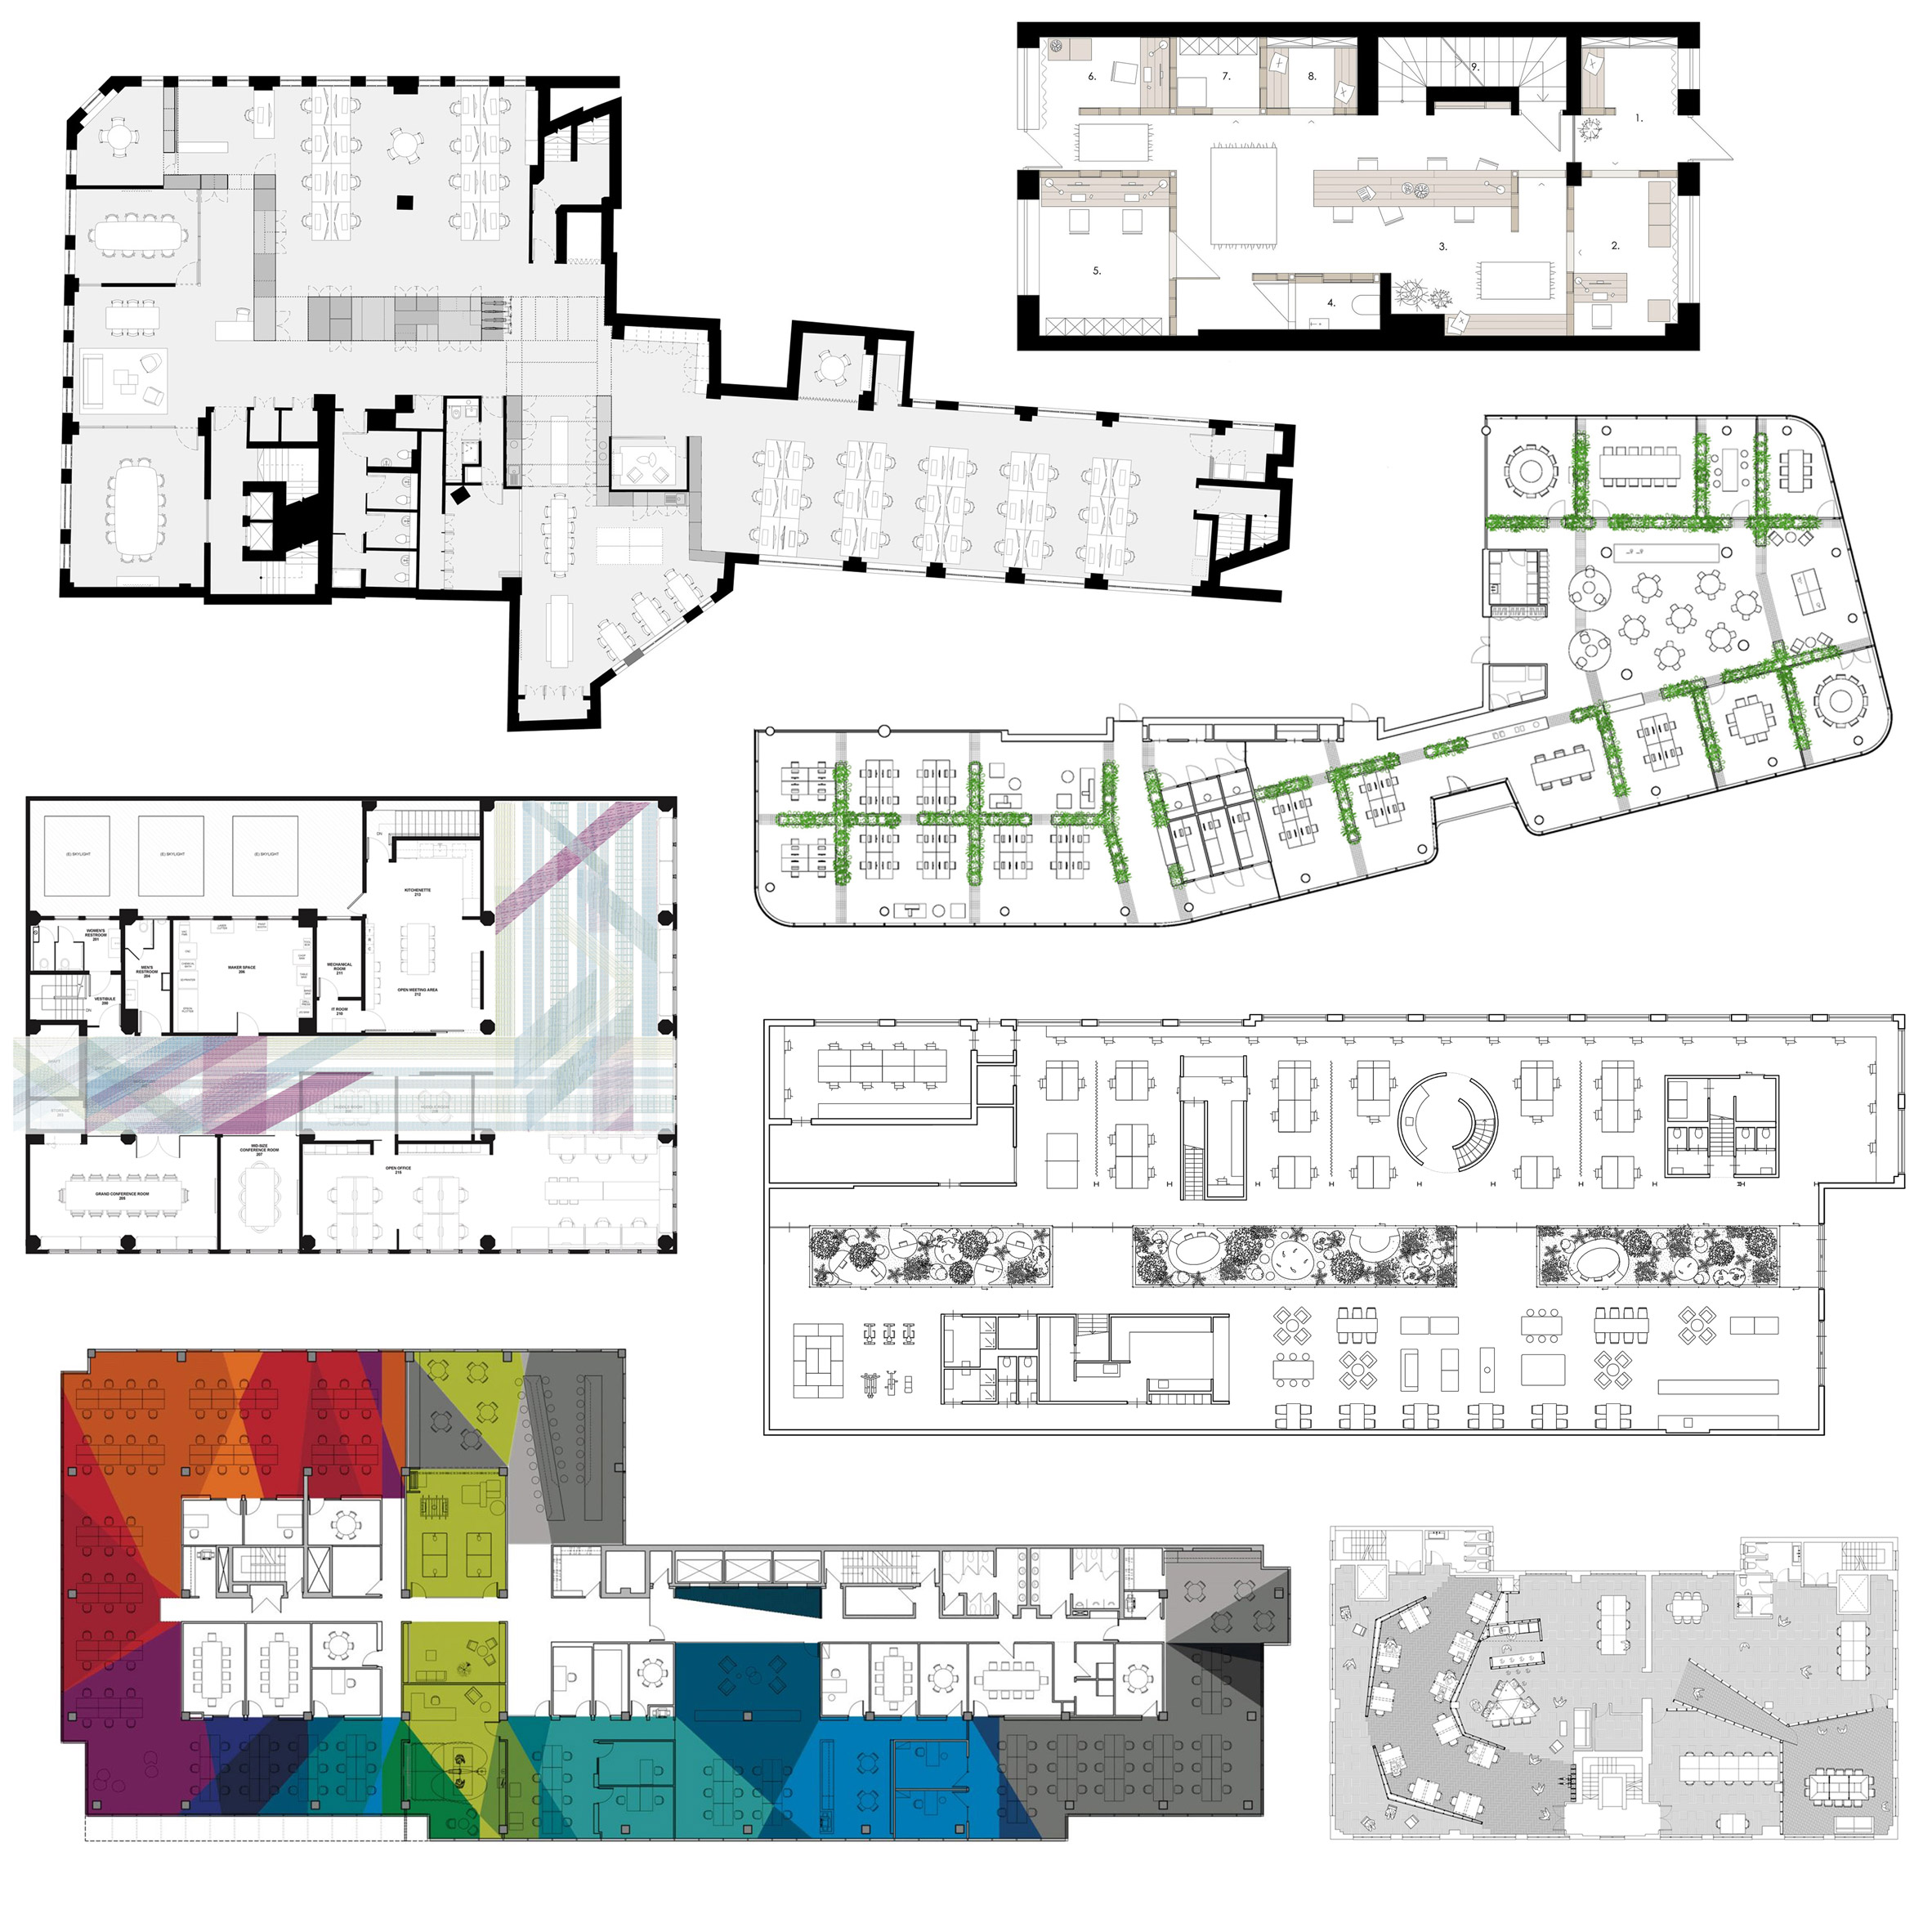 10 office floor plans divided up in